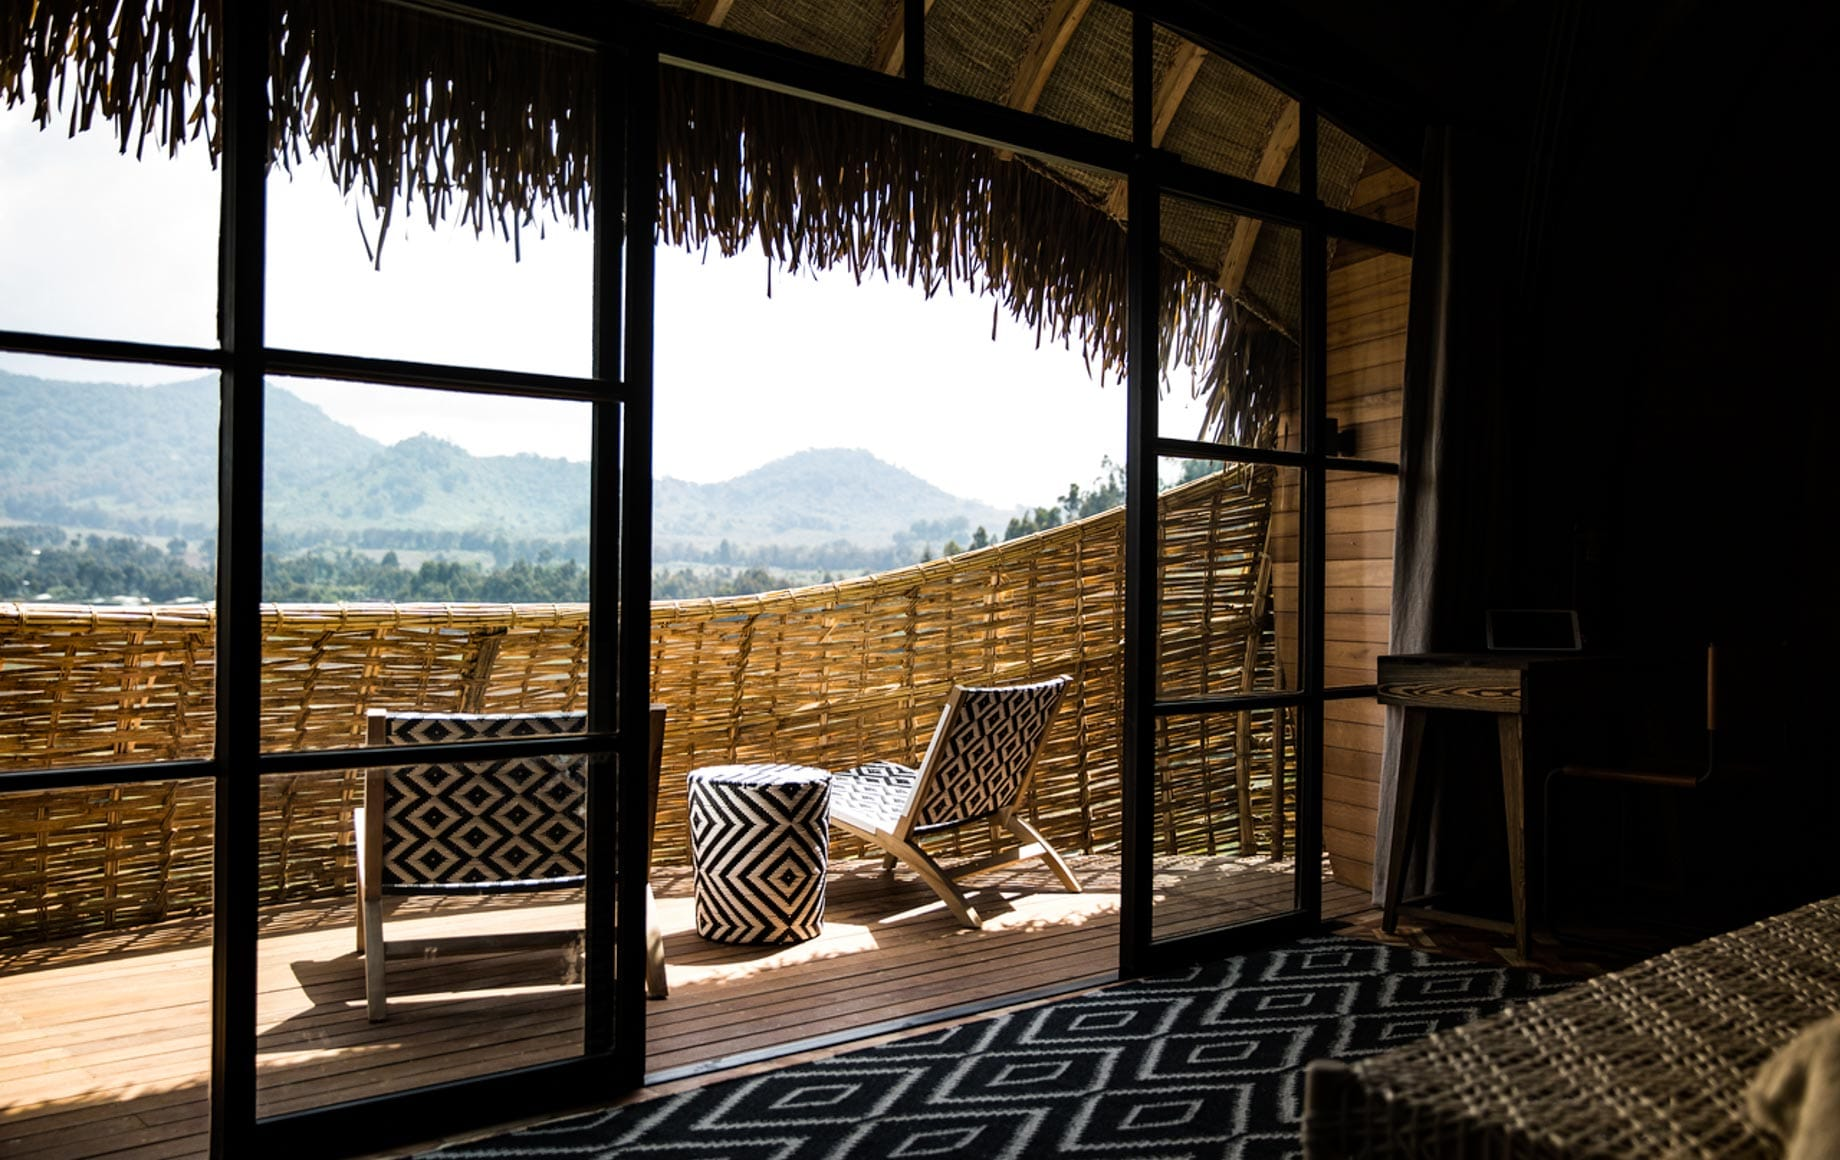 Natural Scenery outside the patio of Bisate Lodge in Africa